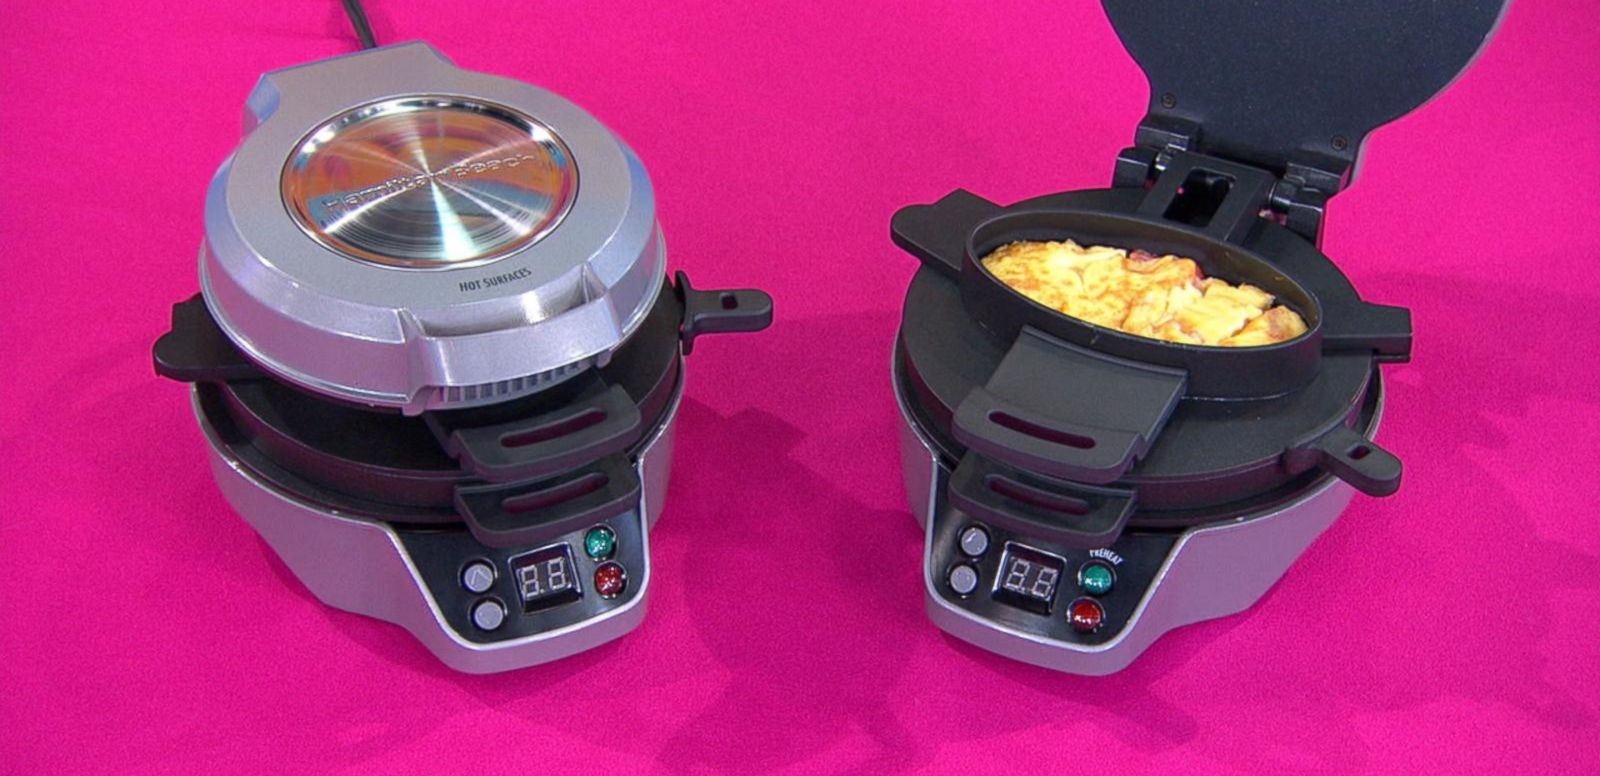 VIDEO: Deals and Steals on Kitchen and Dining Products